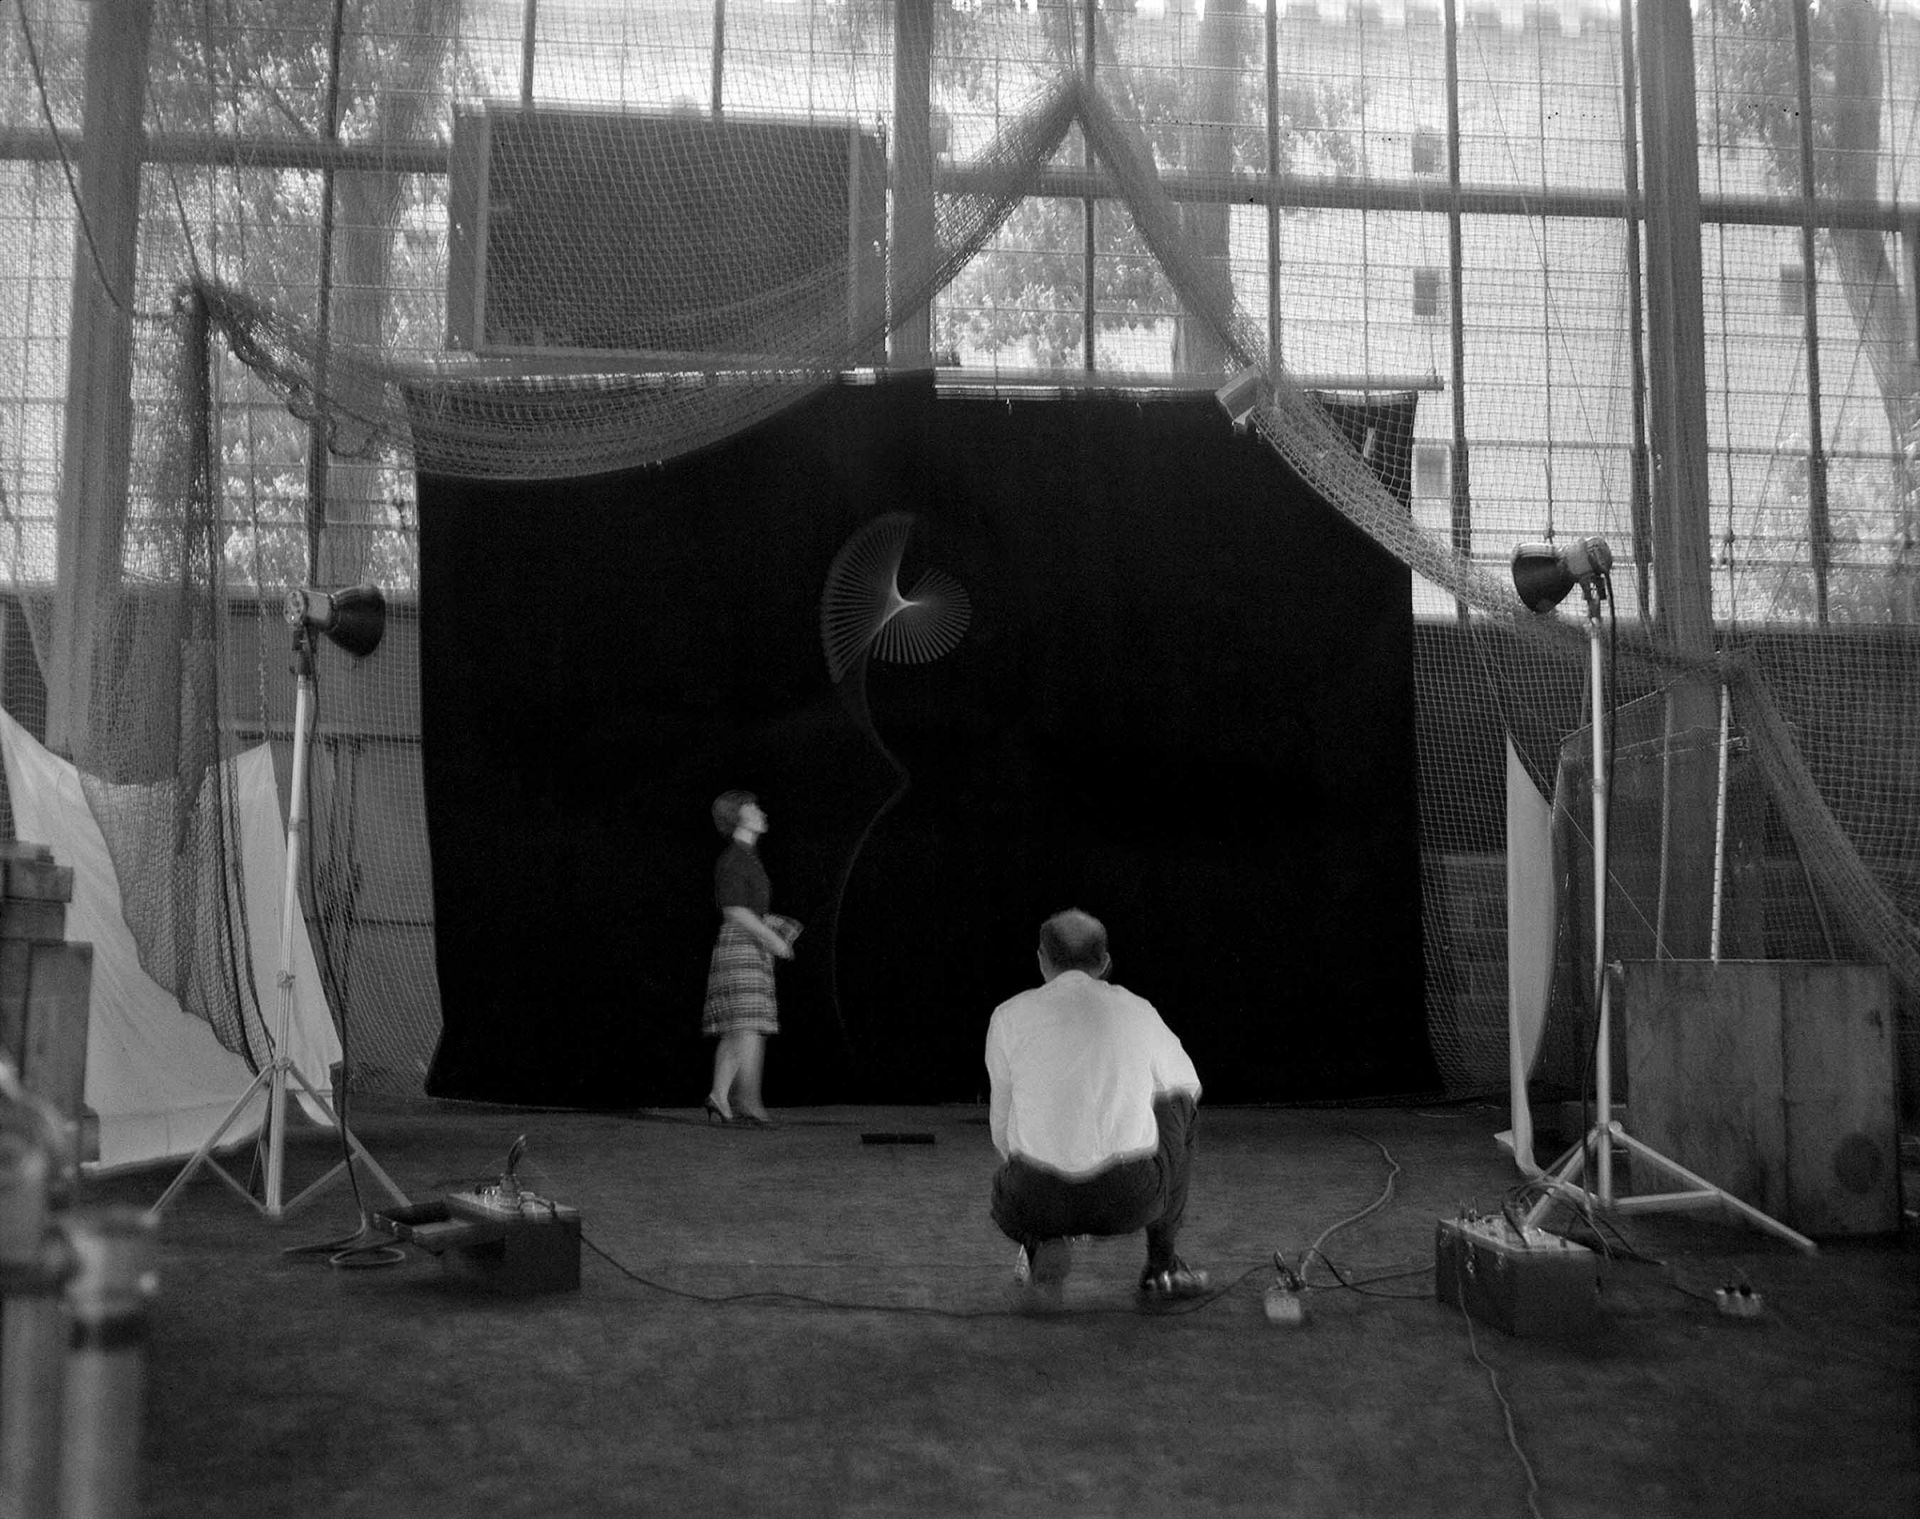 "<i>Edgerton Observes Baton Twirl,</i> 1965<br> pigment print<br> 6 x 7.5 inches<br> Edgerton often worked at MIT's athletic center when the scale of the activity required a much larger ""laboratory."" This photo documents the setup and preparation for a series of studies of baton tosses, showing the observer and his tools and subject. The duration of nearly a second reveals the concentration of both observer and observed."